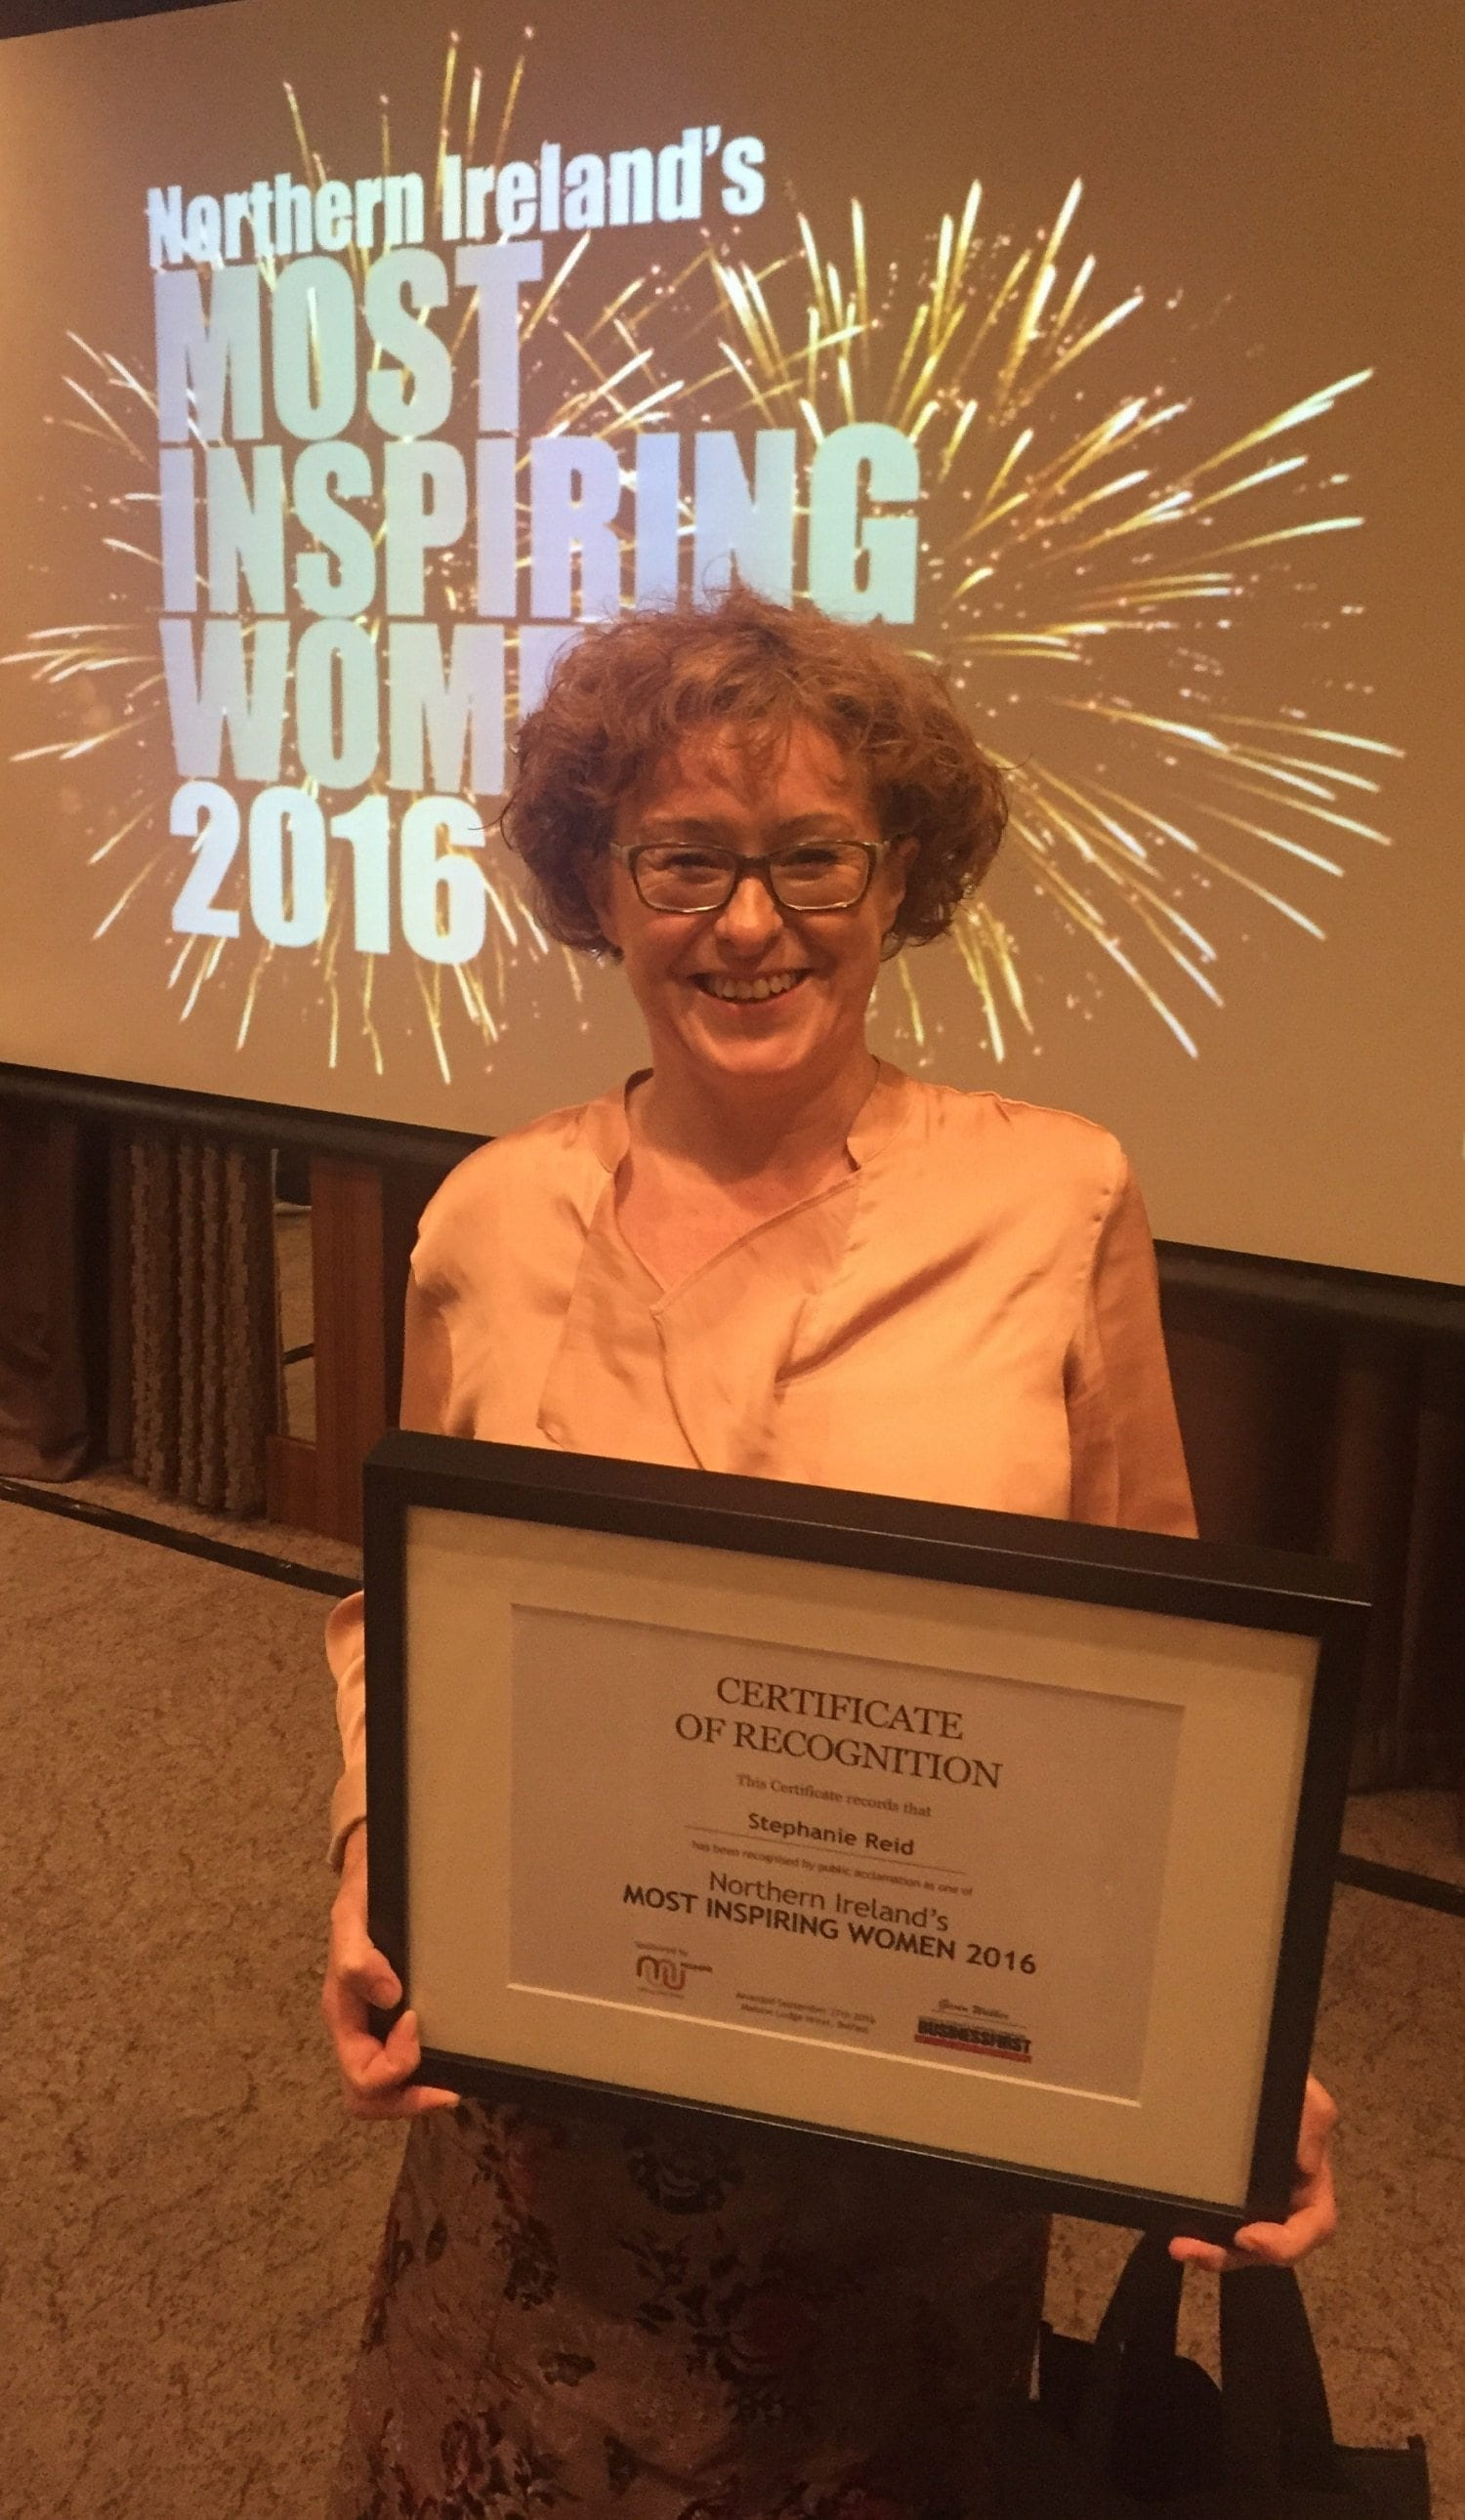 Stephanie Reid - Most Inspirational Women 2016